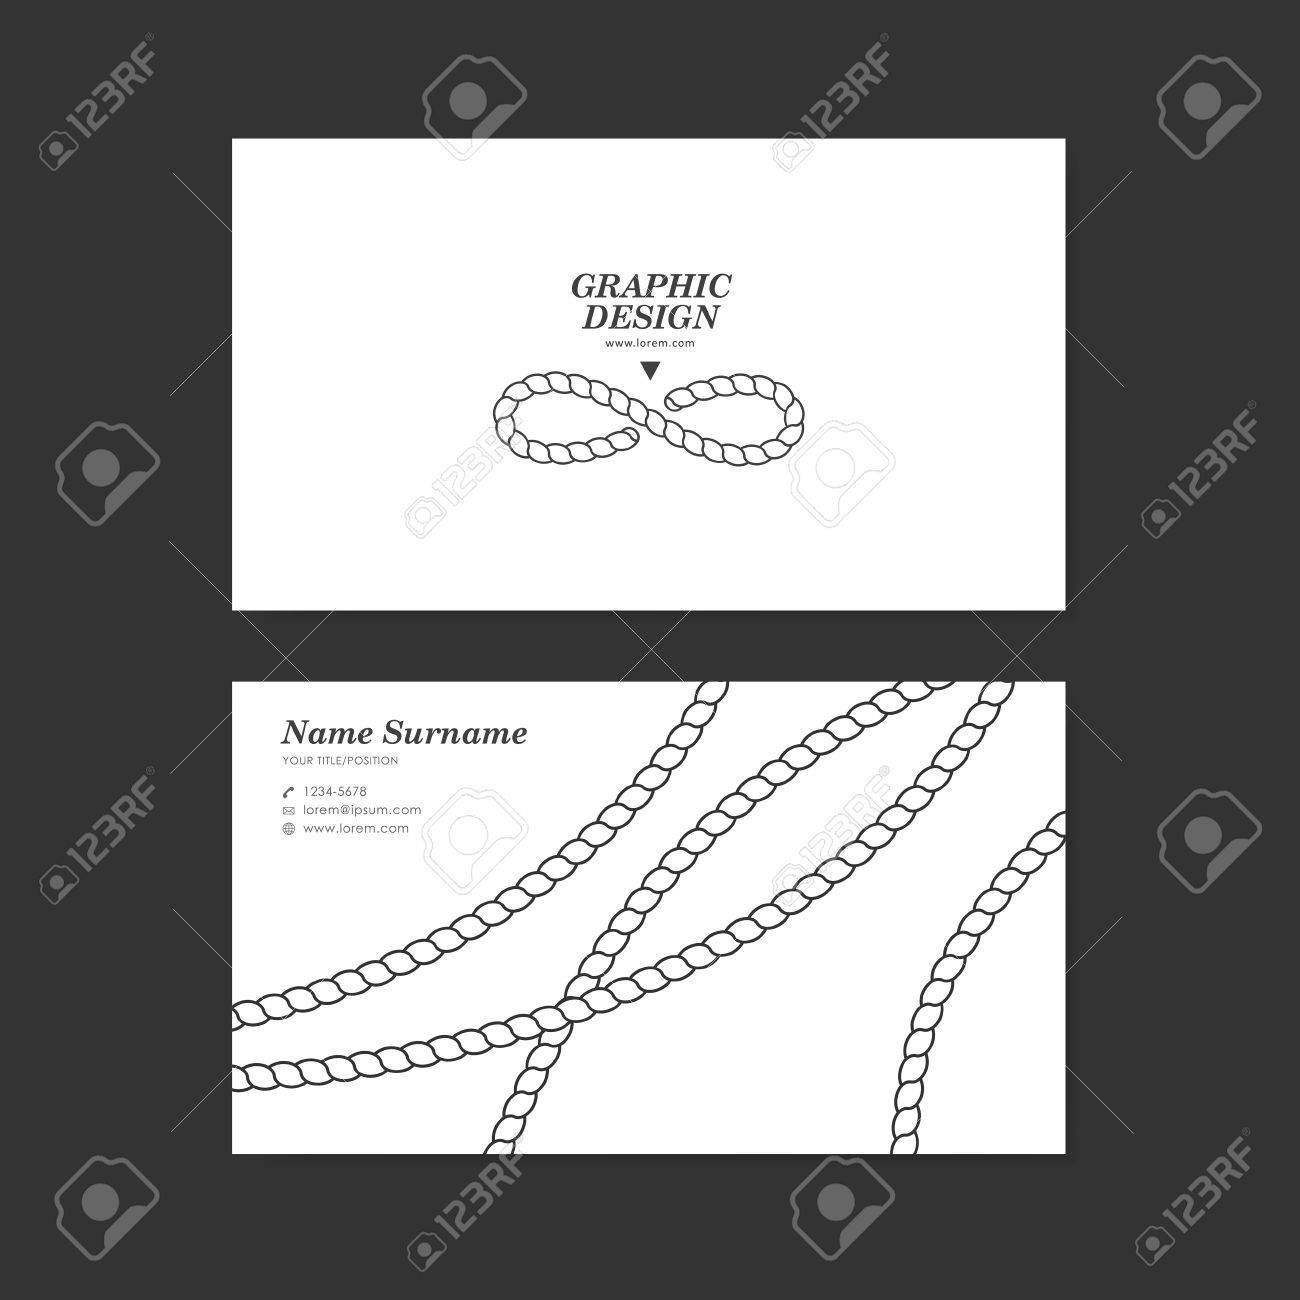 Graceful Business Card Template Design With Elegant Rope Pattern .  Line Card Template